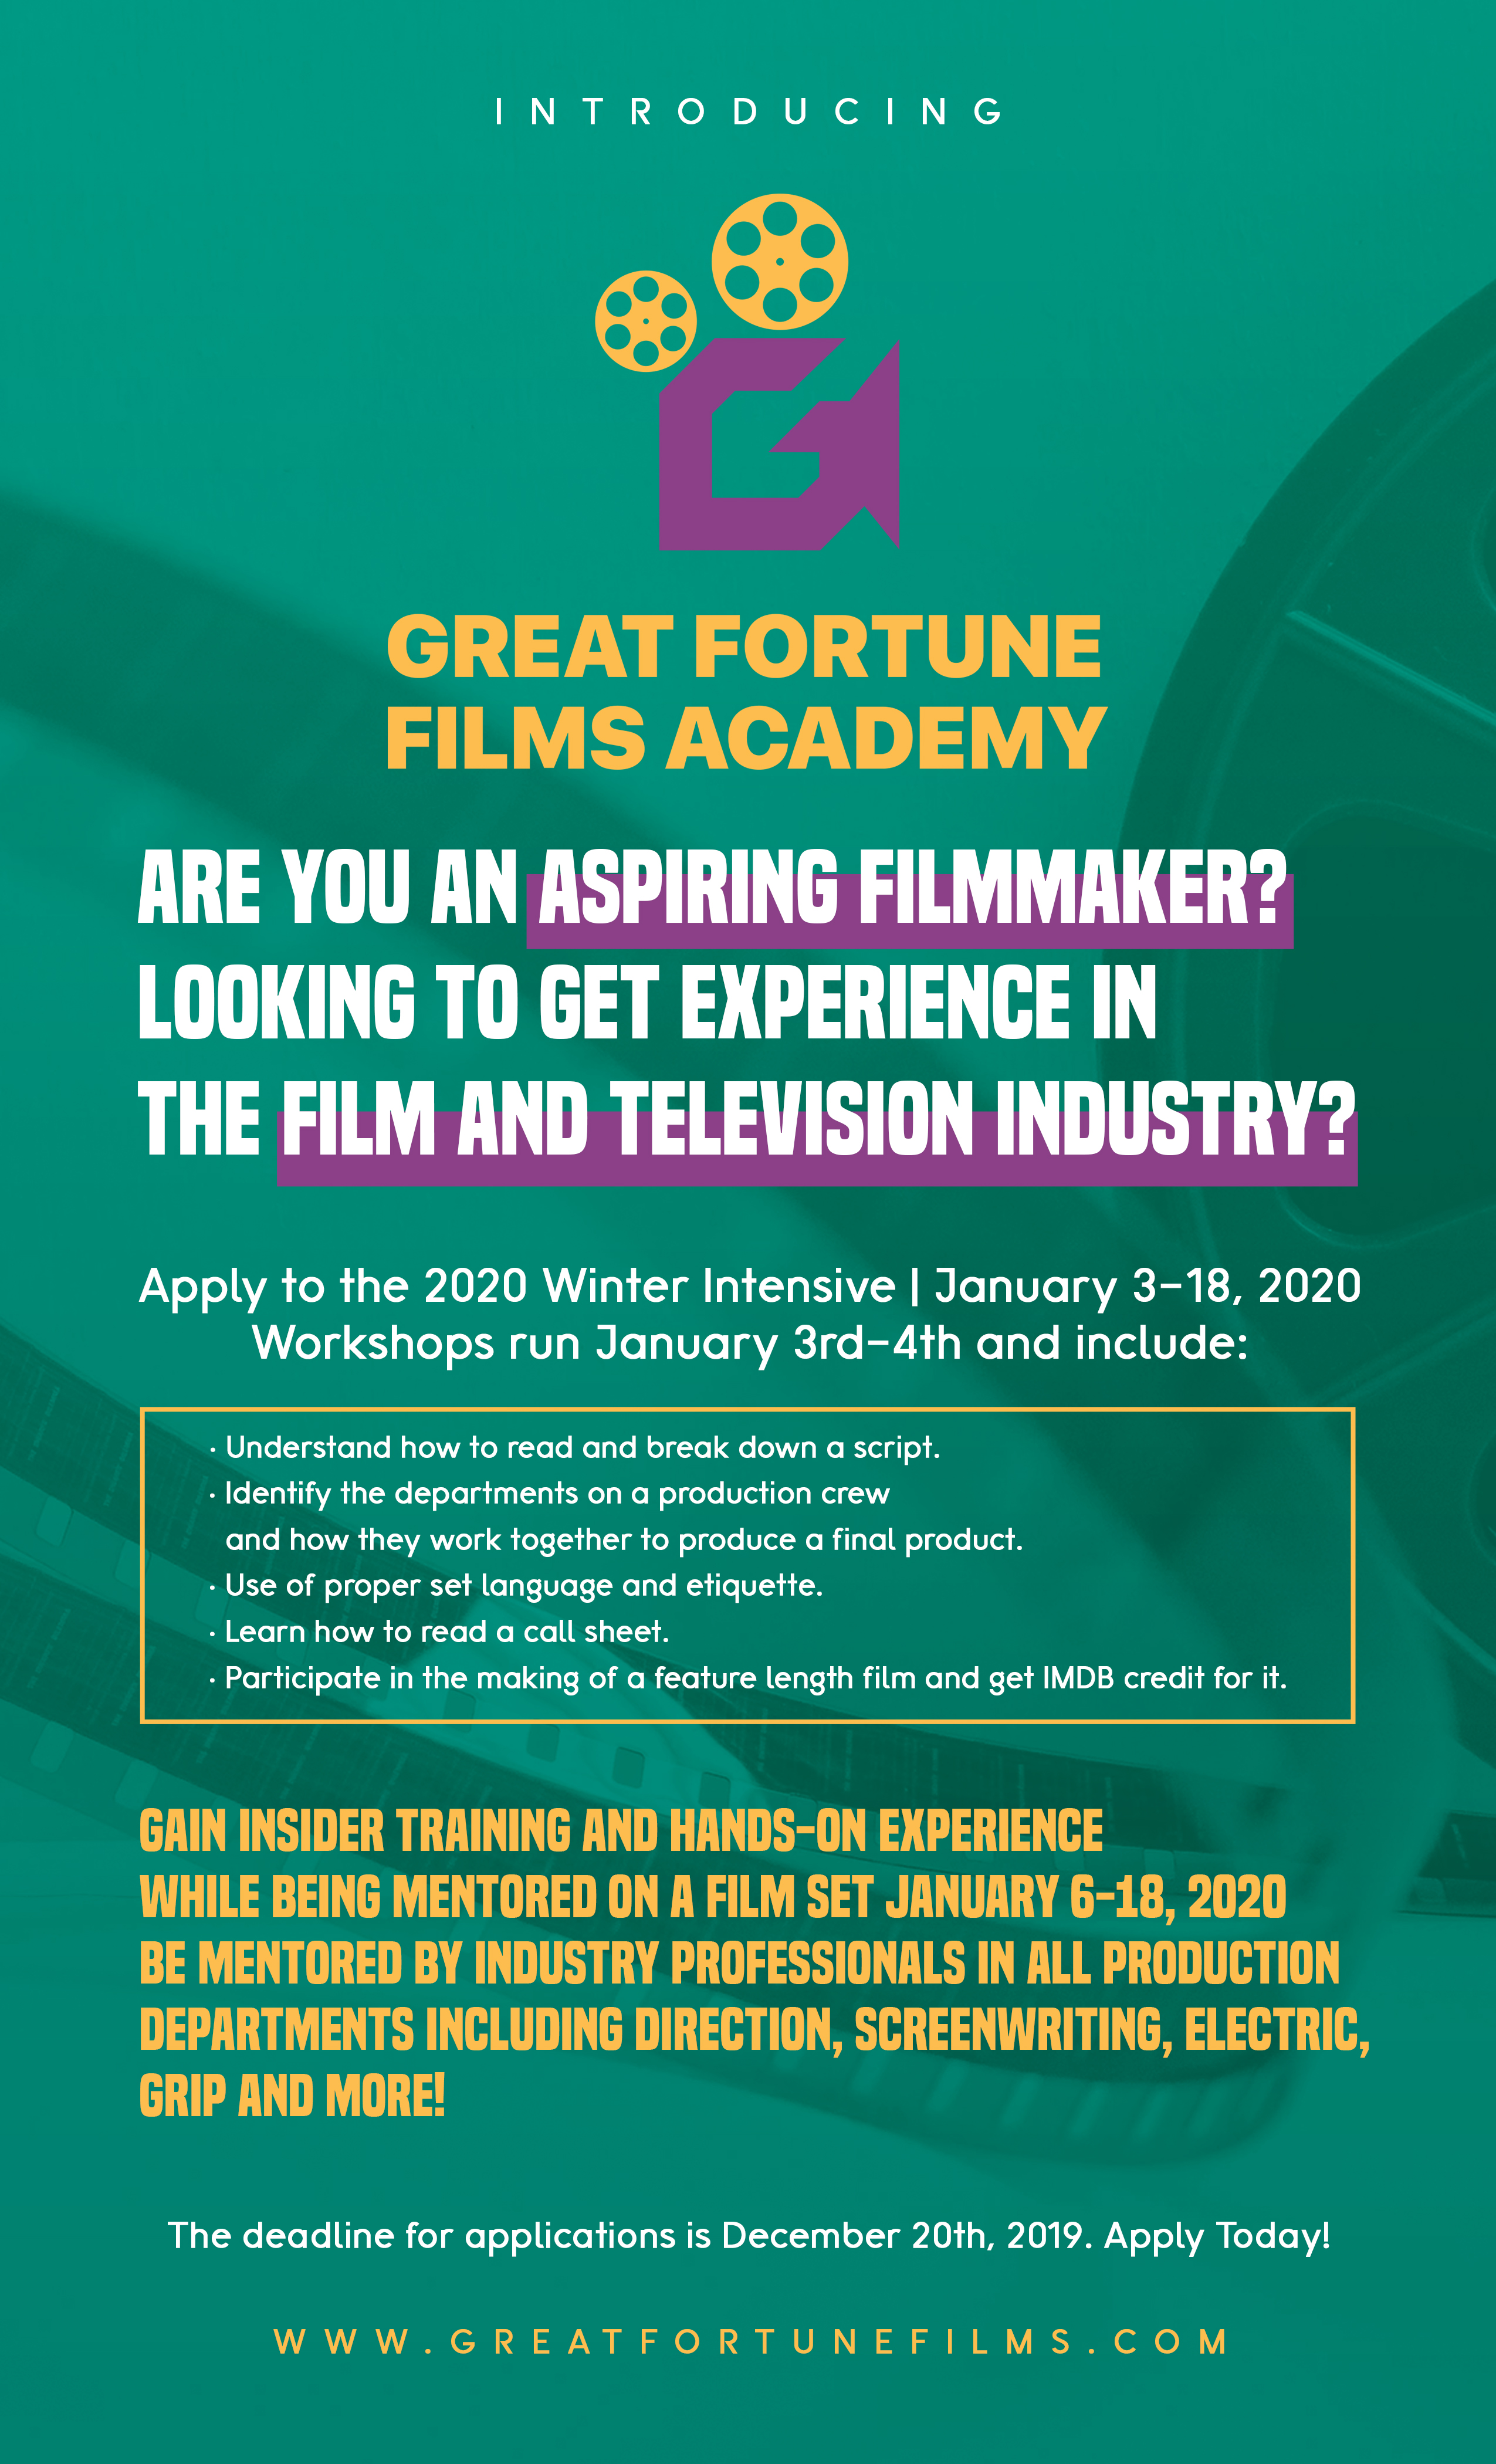 Great Fortune Films Academy